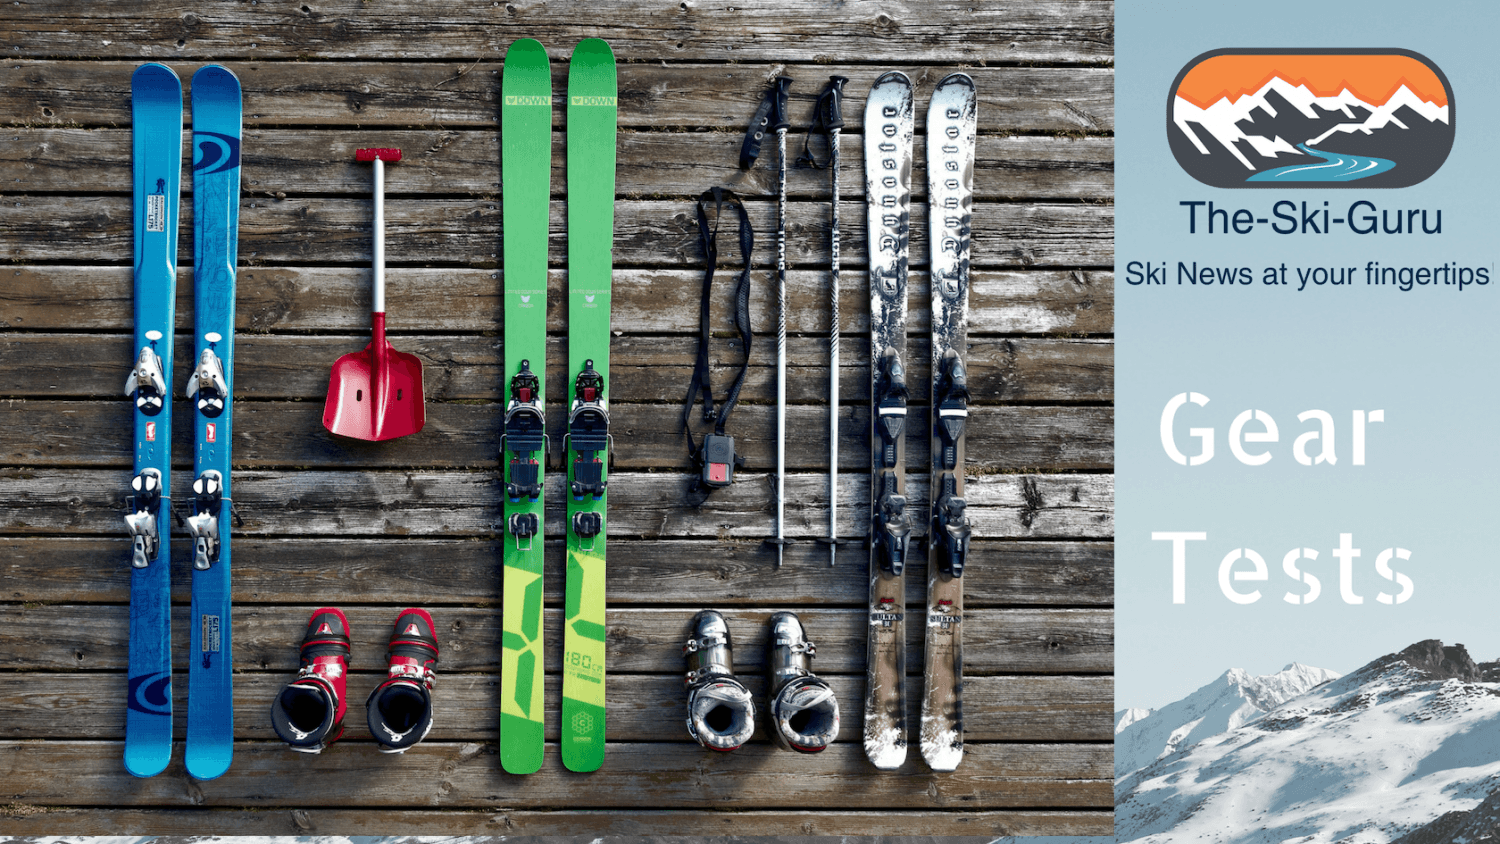 Gear Tests- the new Howell 800 Pro ACL Friendly. The new Future of Ski Bindings is here: Howell 880 Pro ACL friendly ski binding.